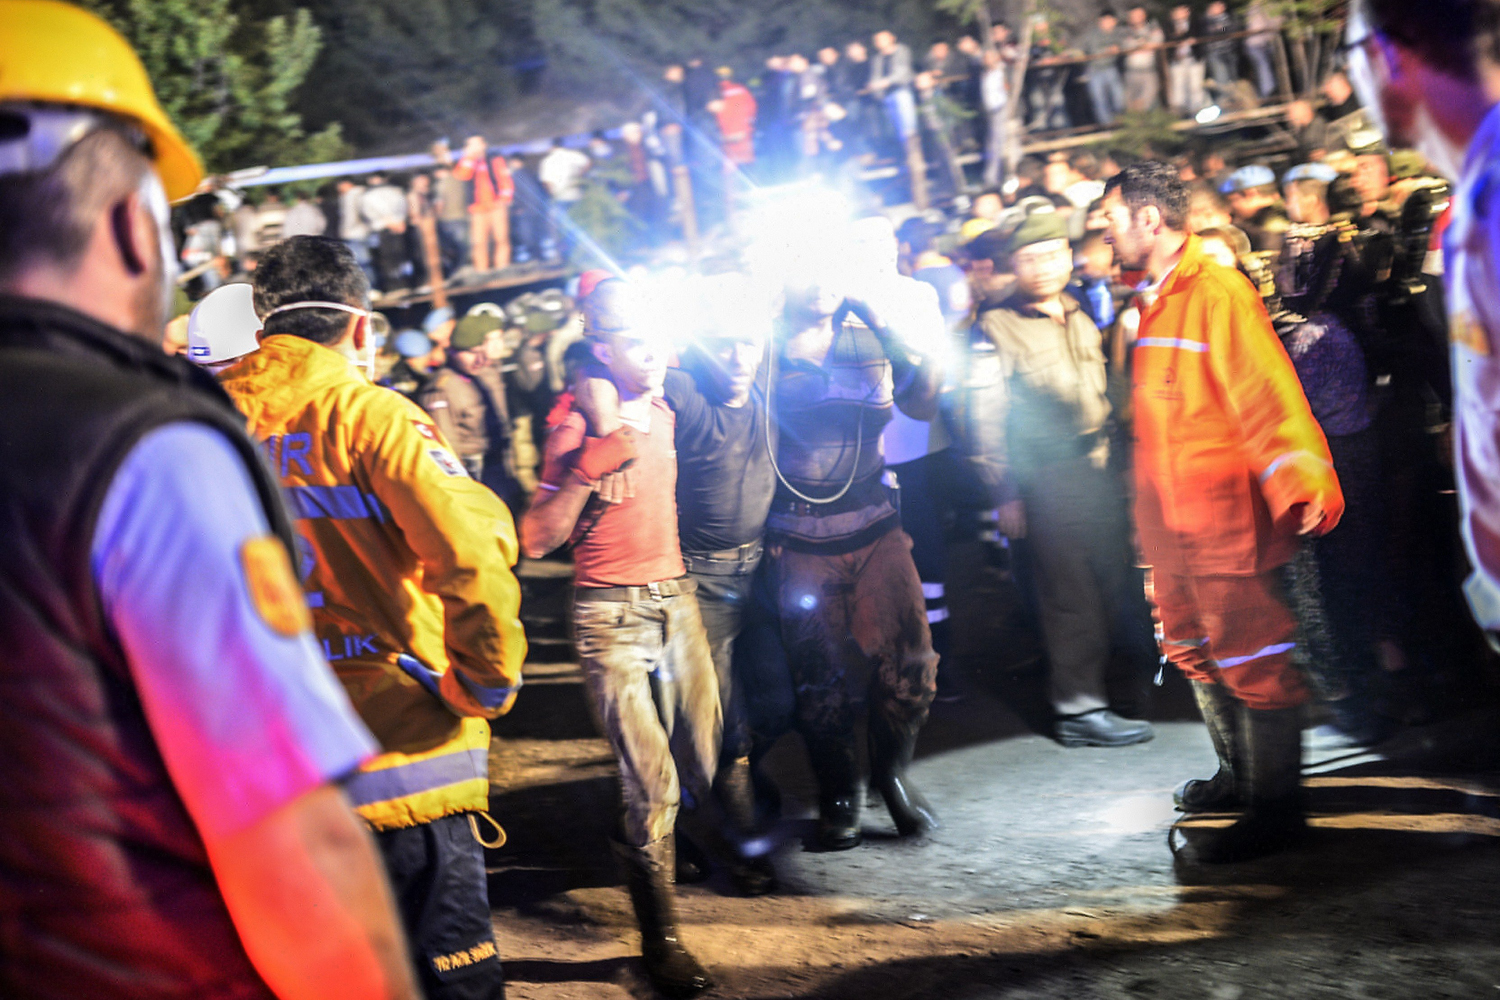 A miner is helped by friends after an explosion in a coal mine in Manisa, Turkey, May 13, 2014.